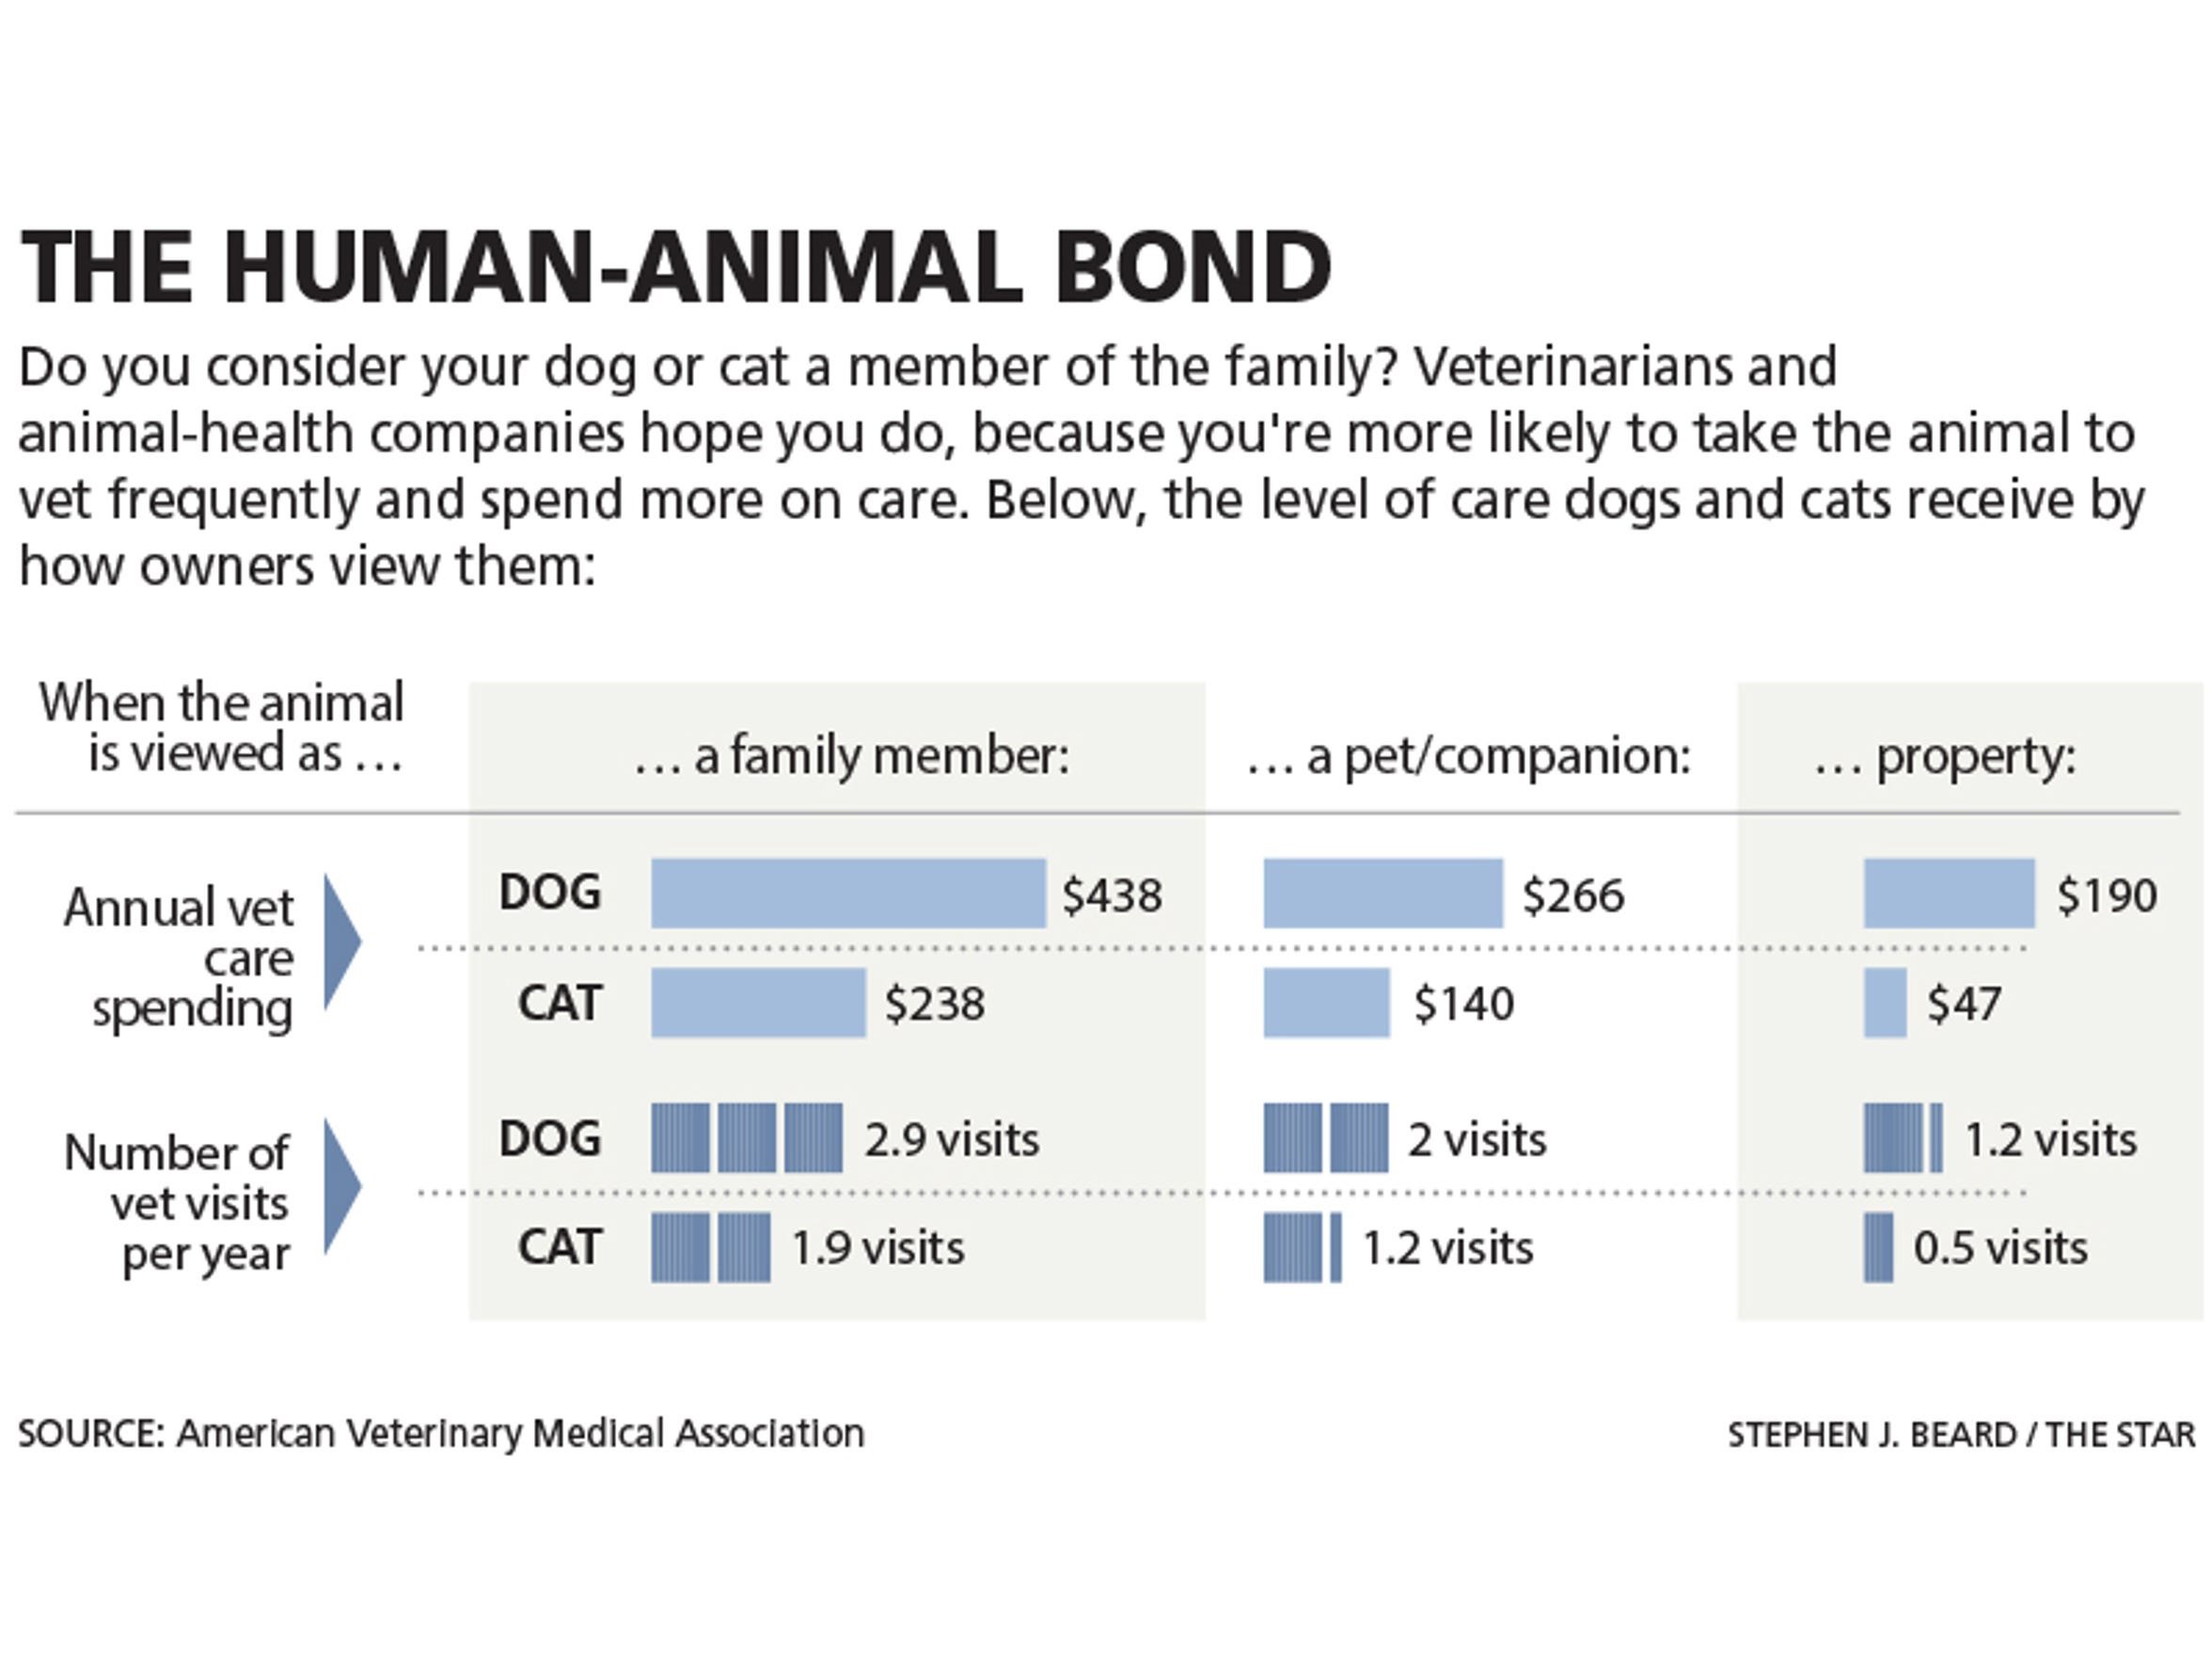 The human-animal bond graphic comparing the annually